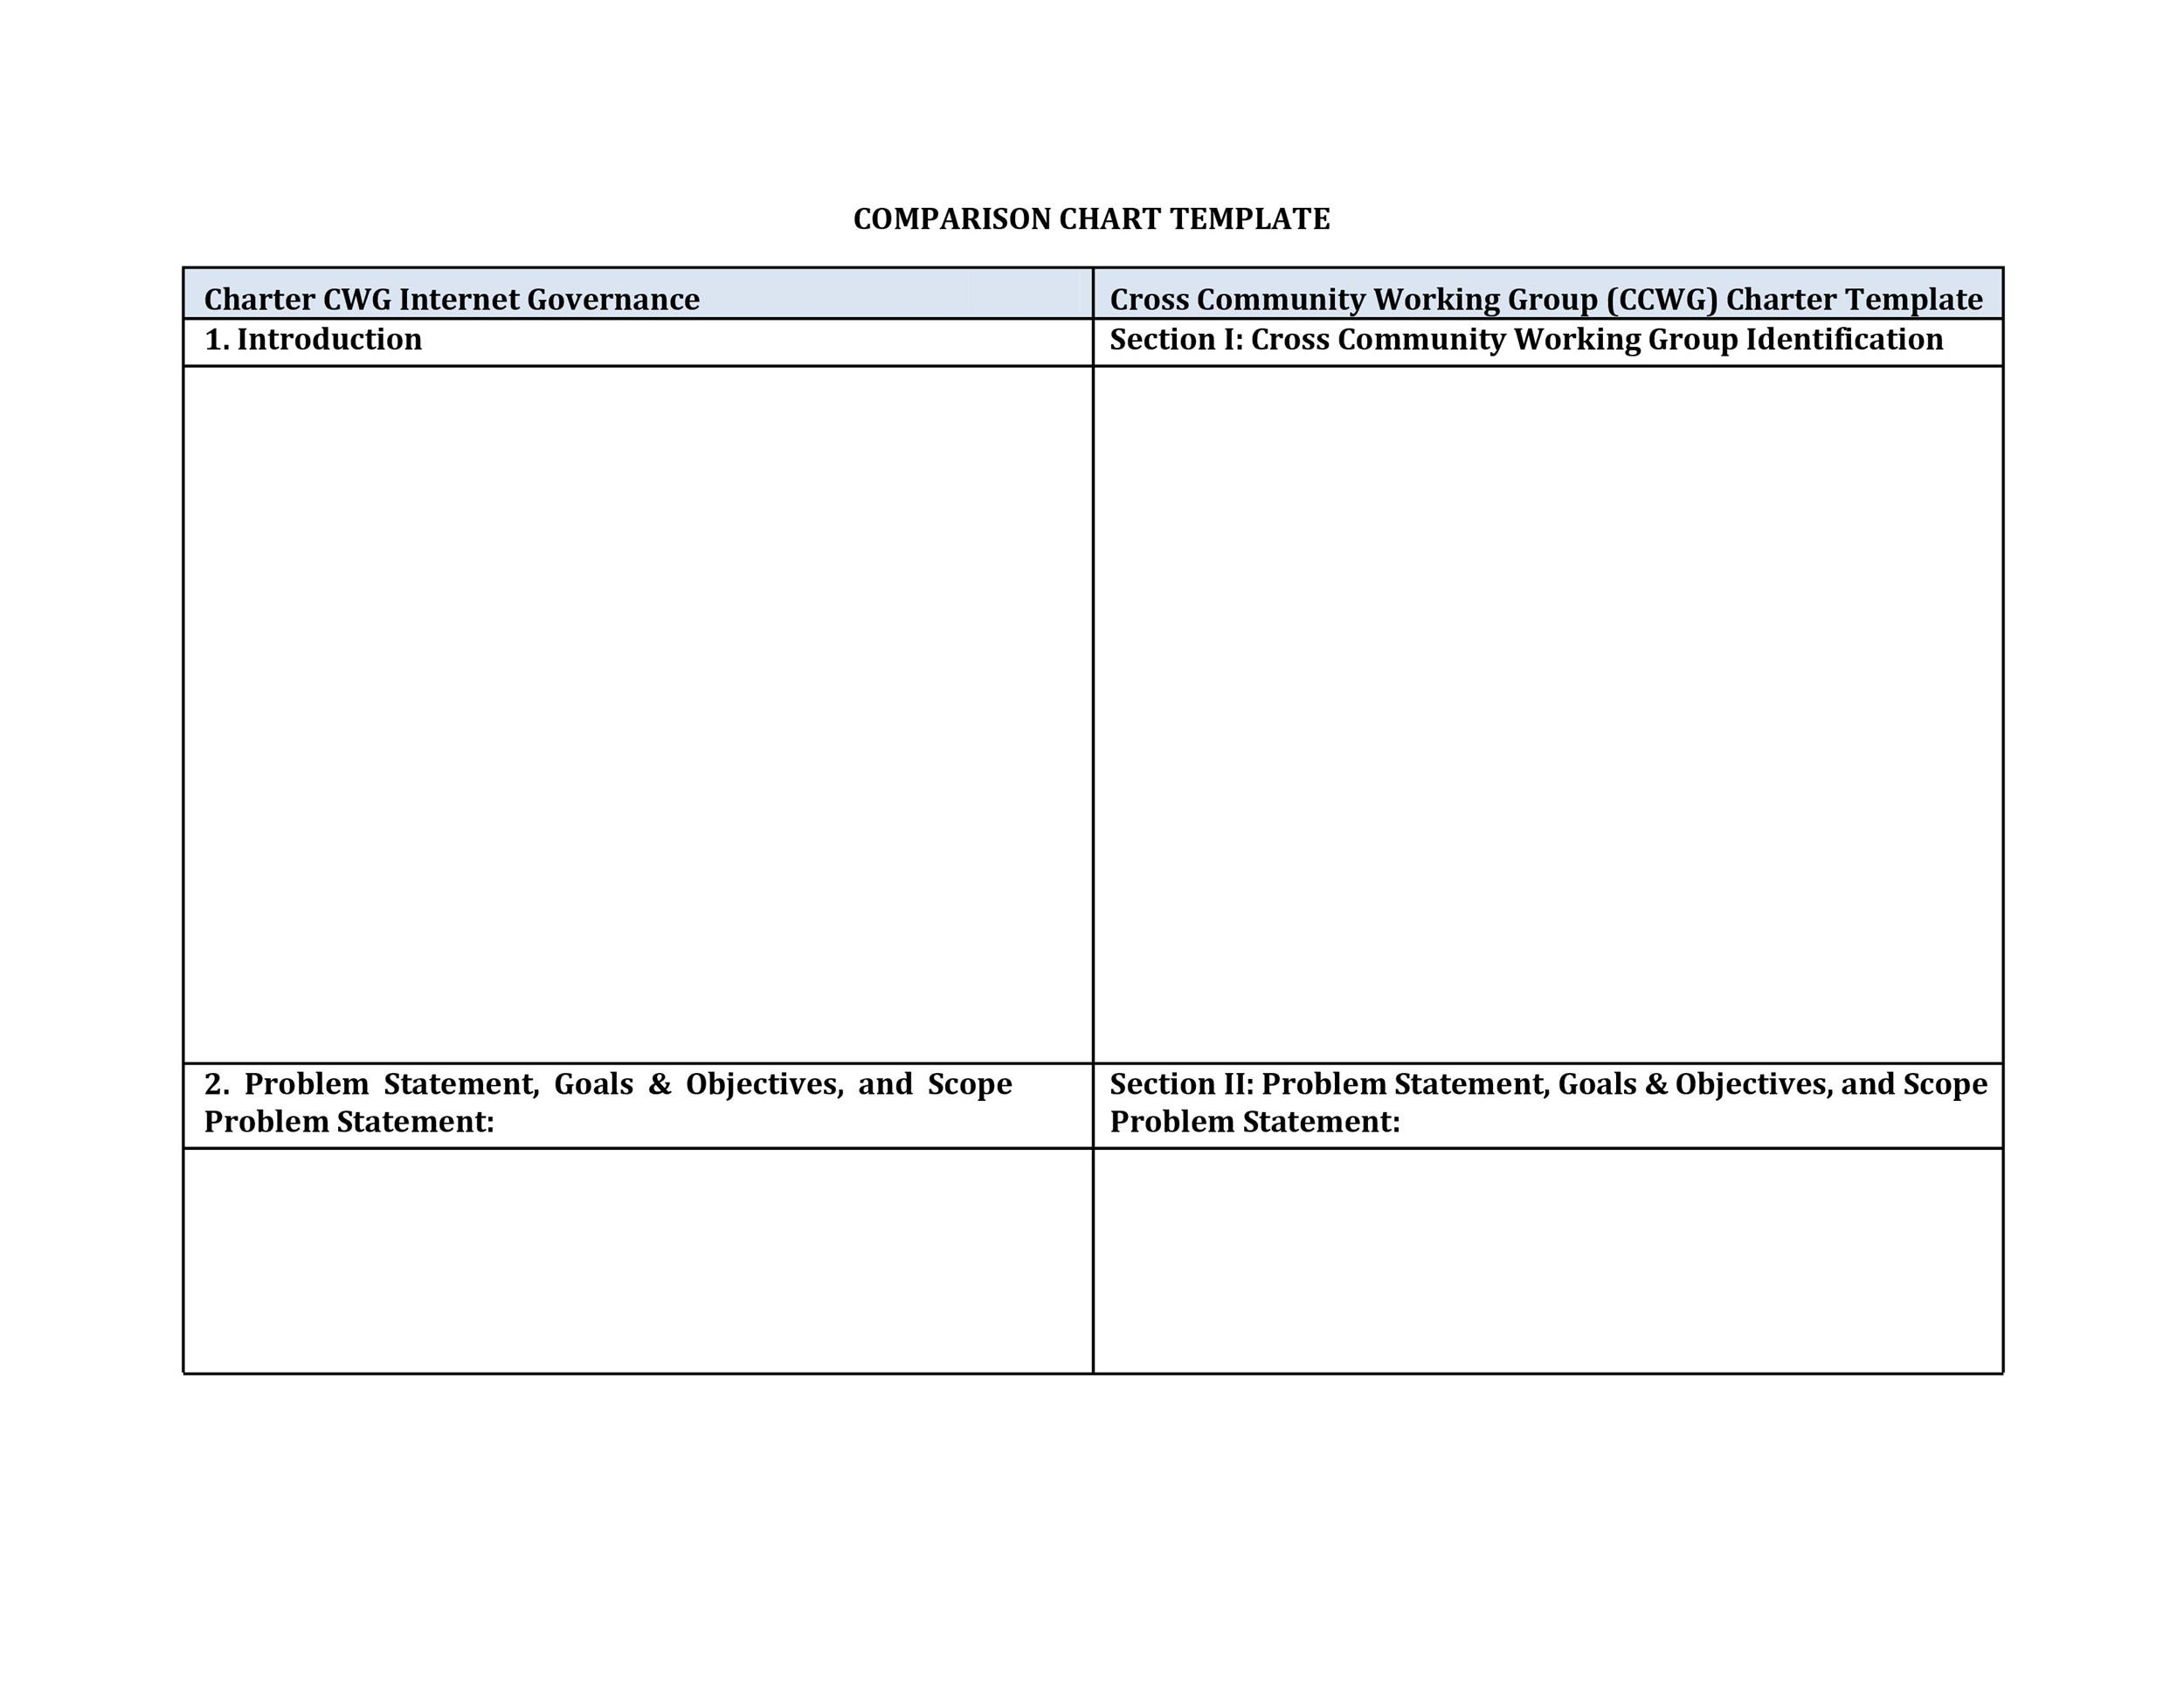 40 great comparison chart templates for any situation template lab